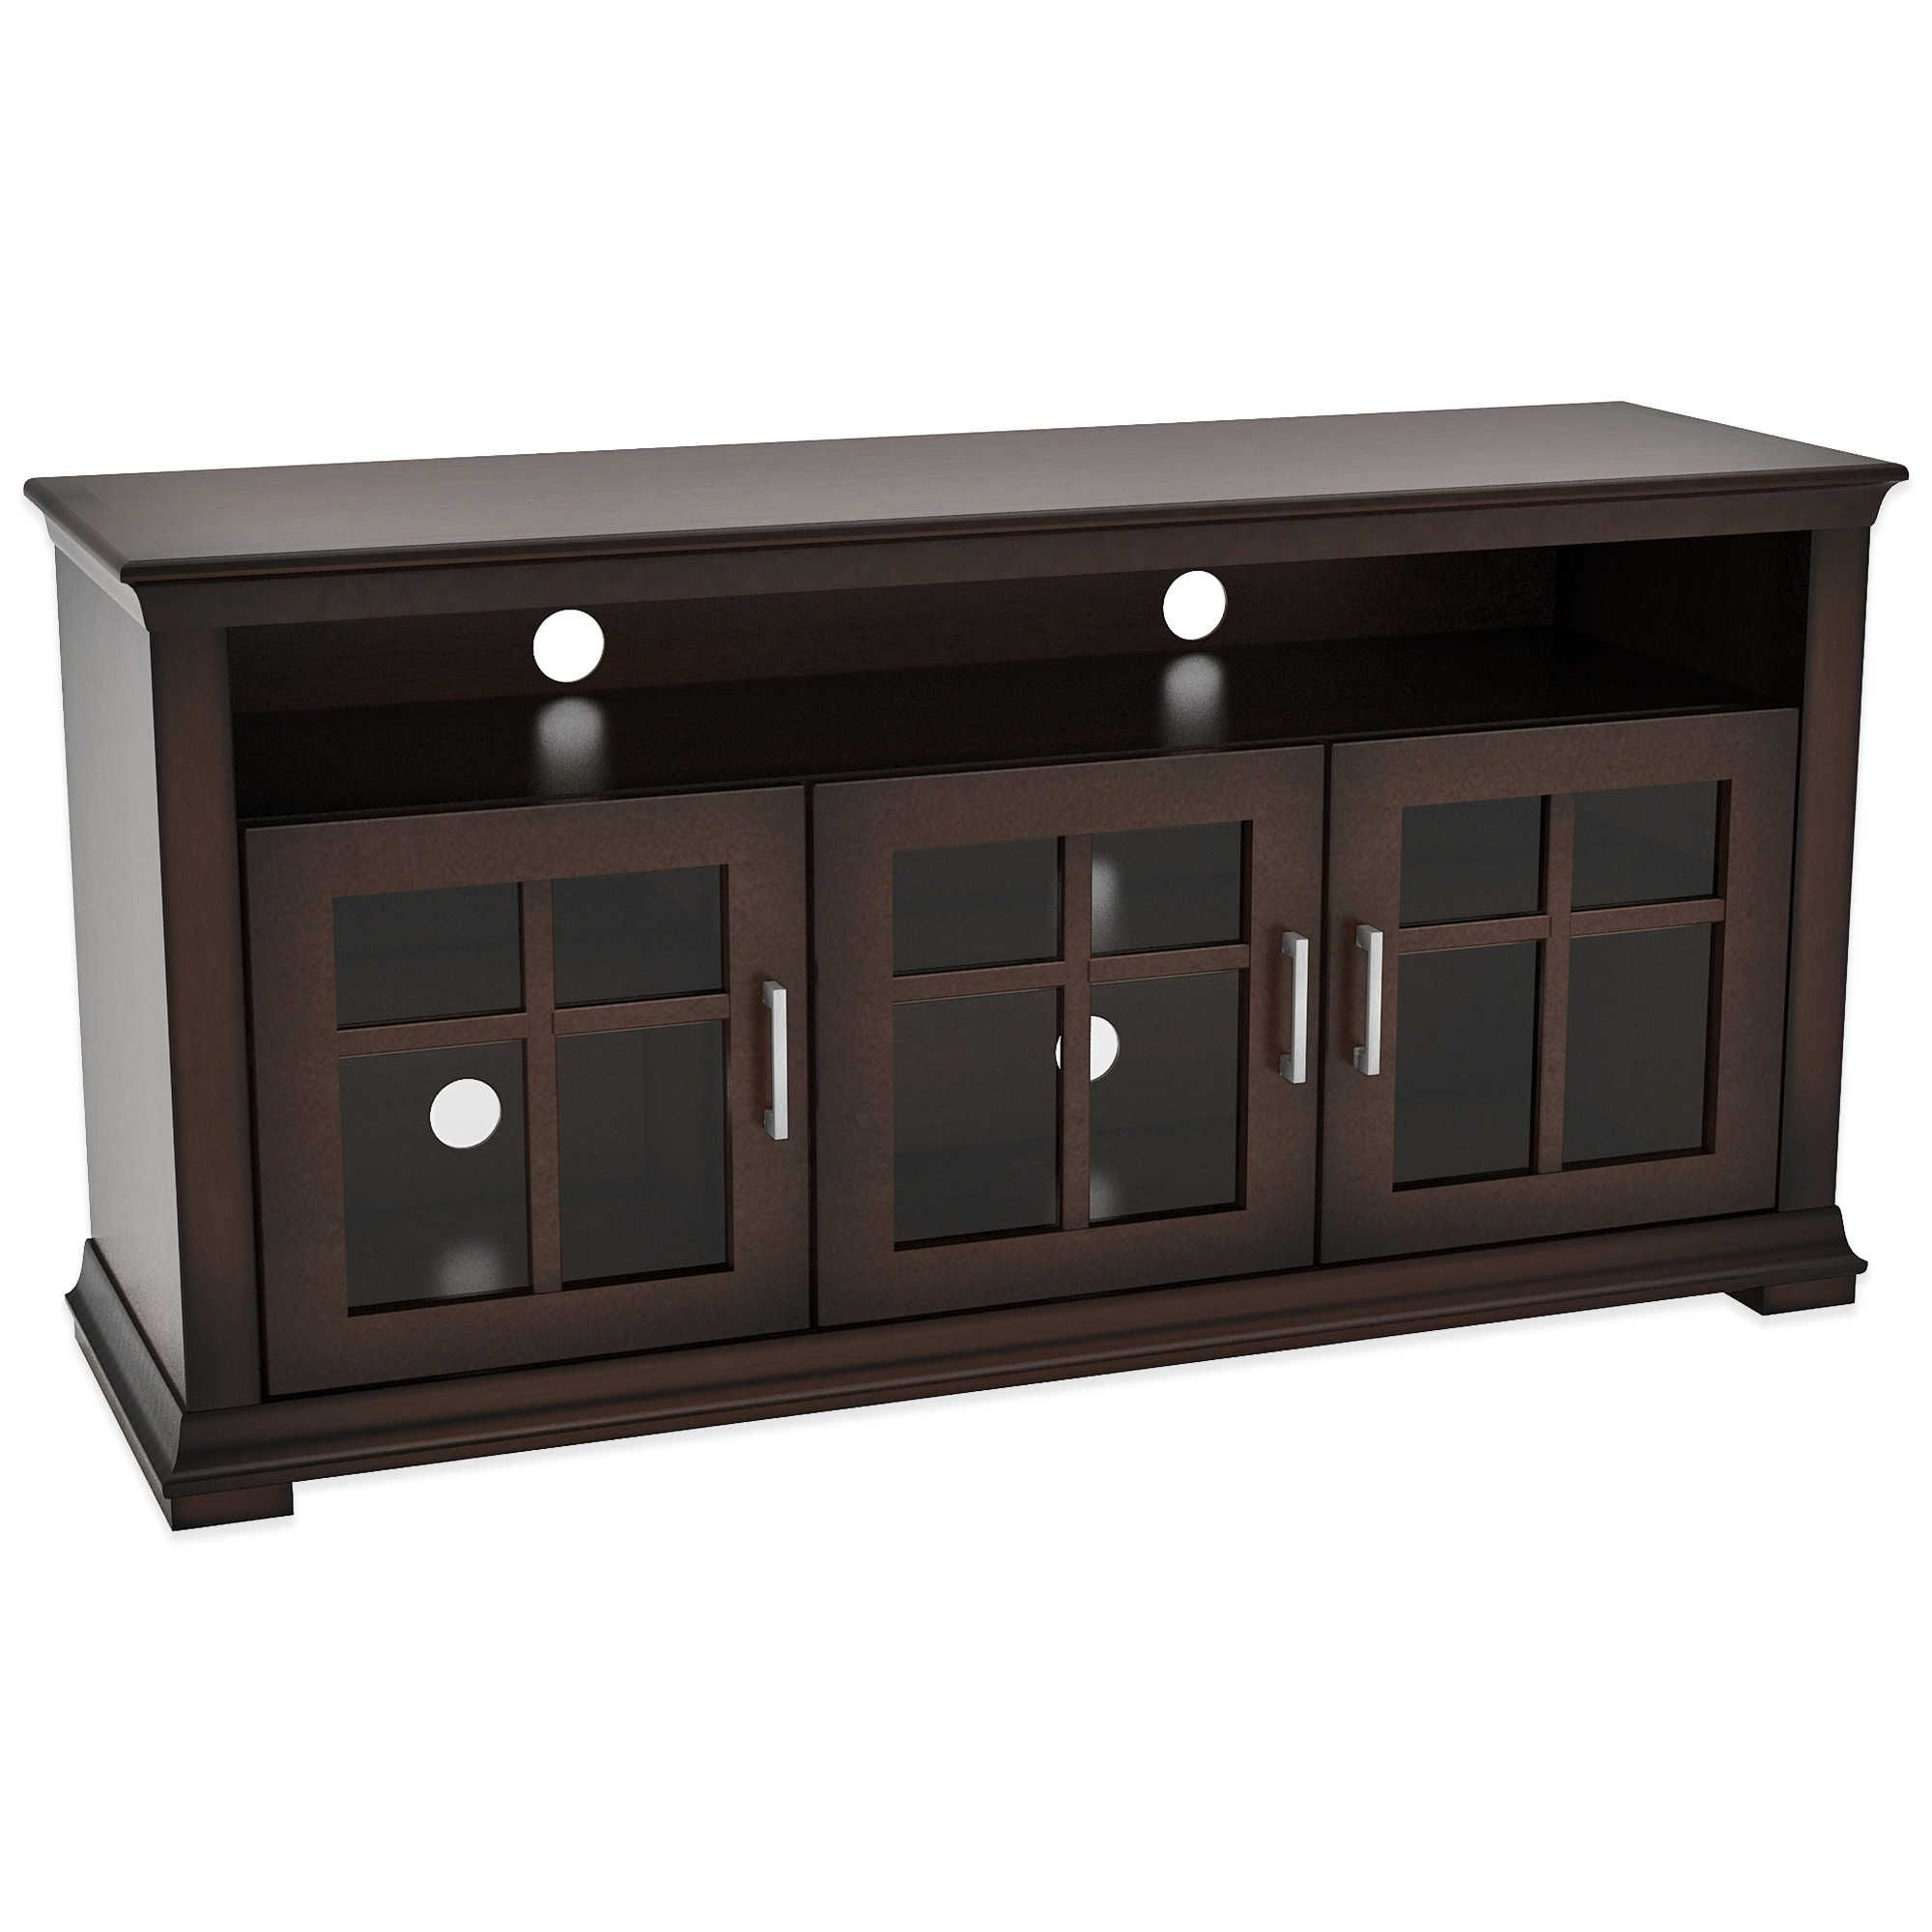 Best And Newest Dark Wood Tv Cabinet With Glass Doors (View 20 of 20)